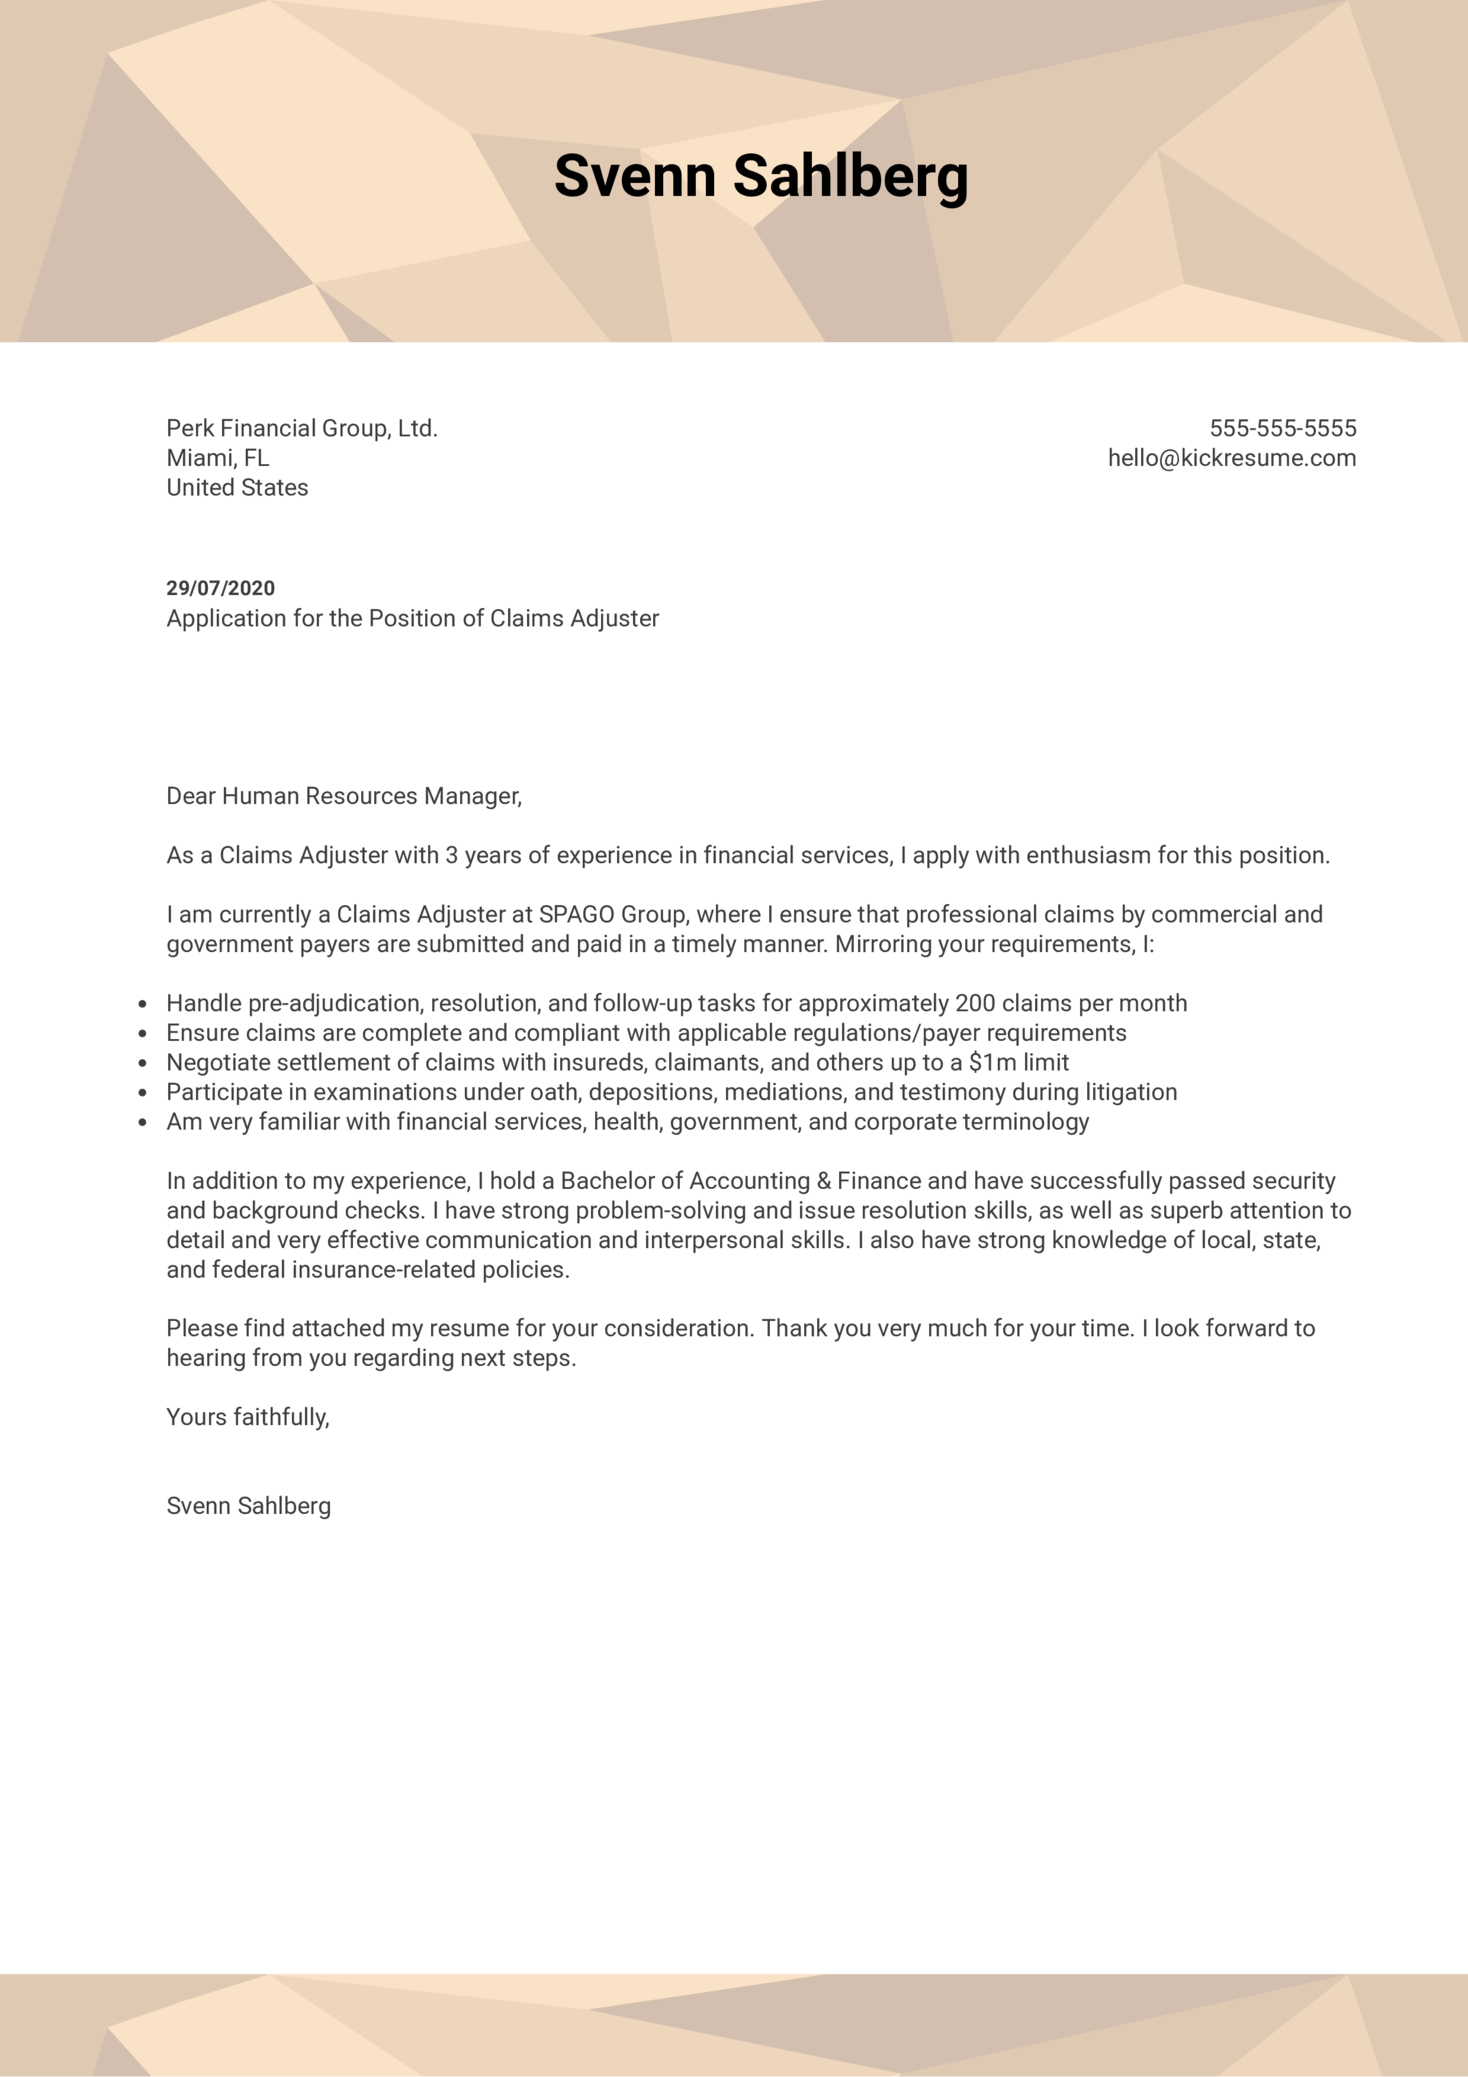 Claim Adjuster Cover Letter Example